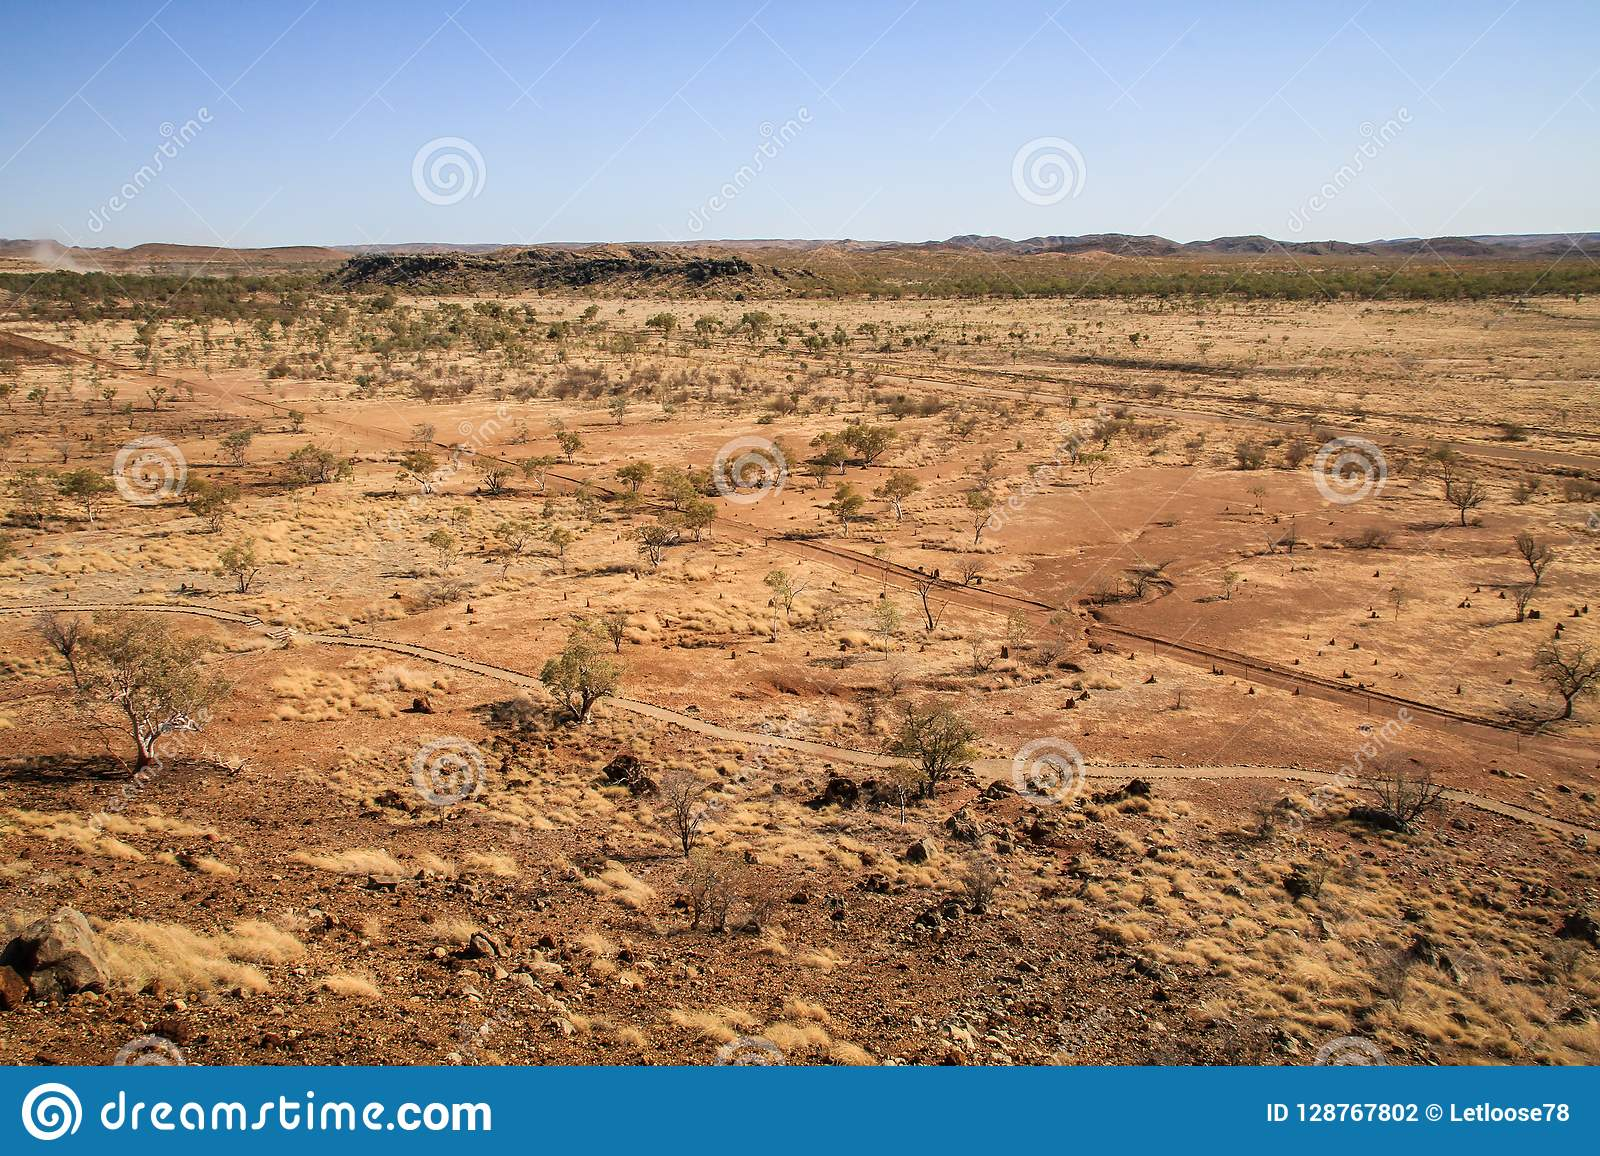 View on the desert from Riversleigh Fossil Site, Savannah Way, Queensland, Australia